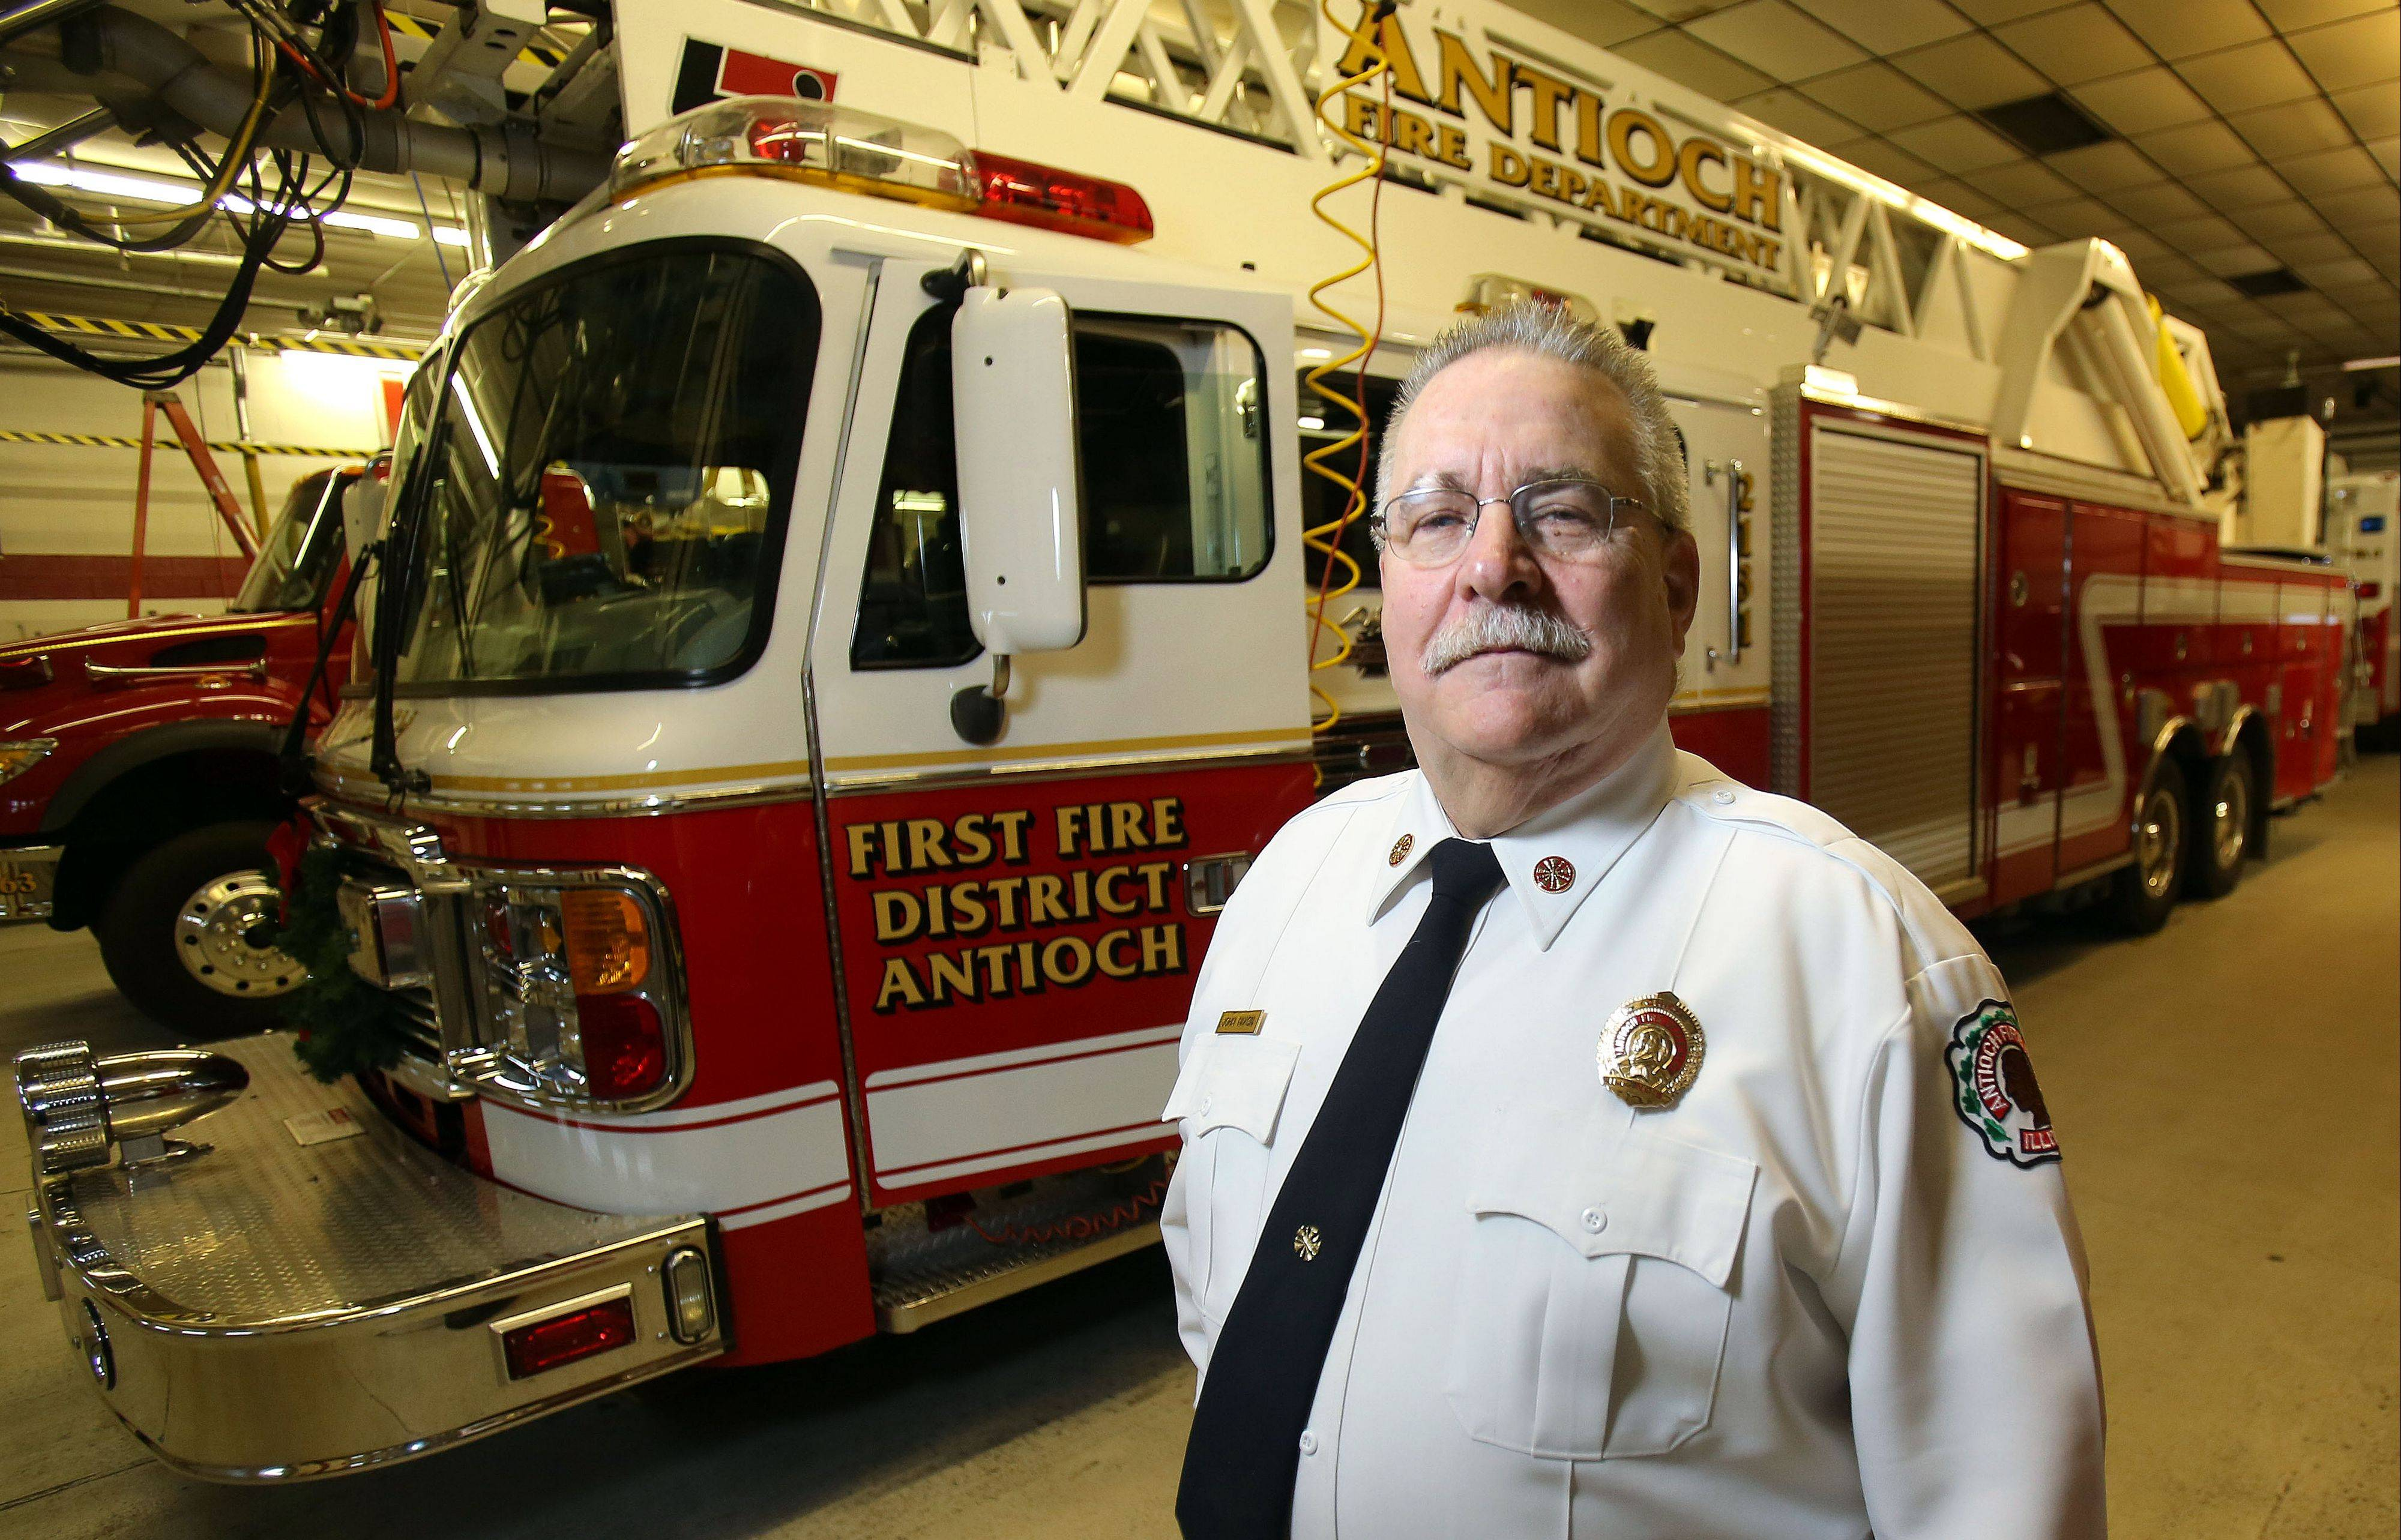 Antioch Fire Chief John Nixon is one of several local officials serving on a newly created fire safety commission tasked to streamline fire and rescue services in the village and Antioch Township.